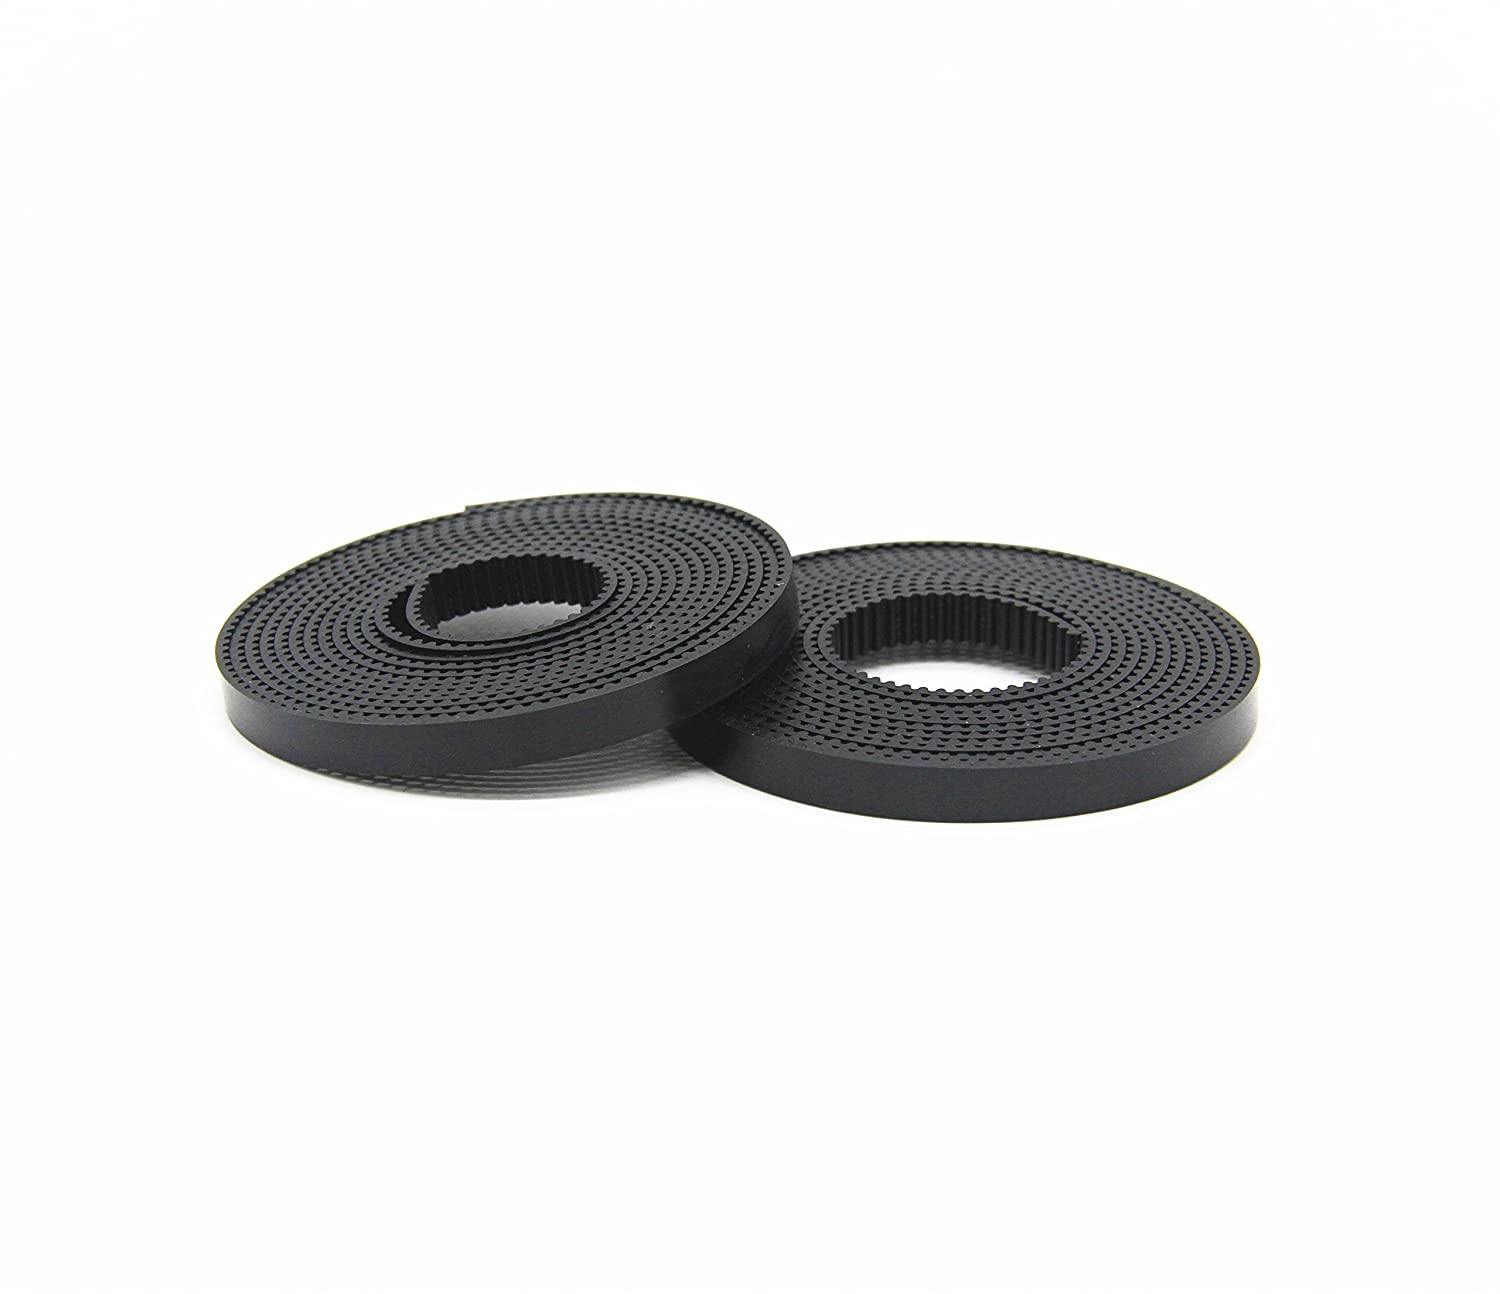 MagicD 2Pcs 1.7M GT2 Timing Belt for Reprap 3D Printer, 6mm Wide 2mm Pitch GT2 Belt, Compatible with GT2 Pulley.